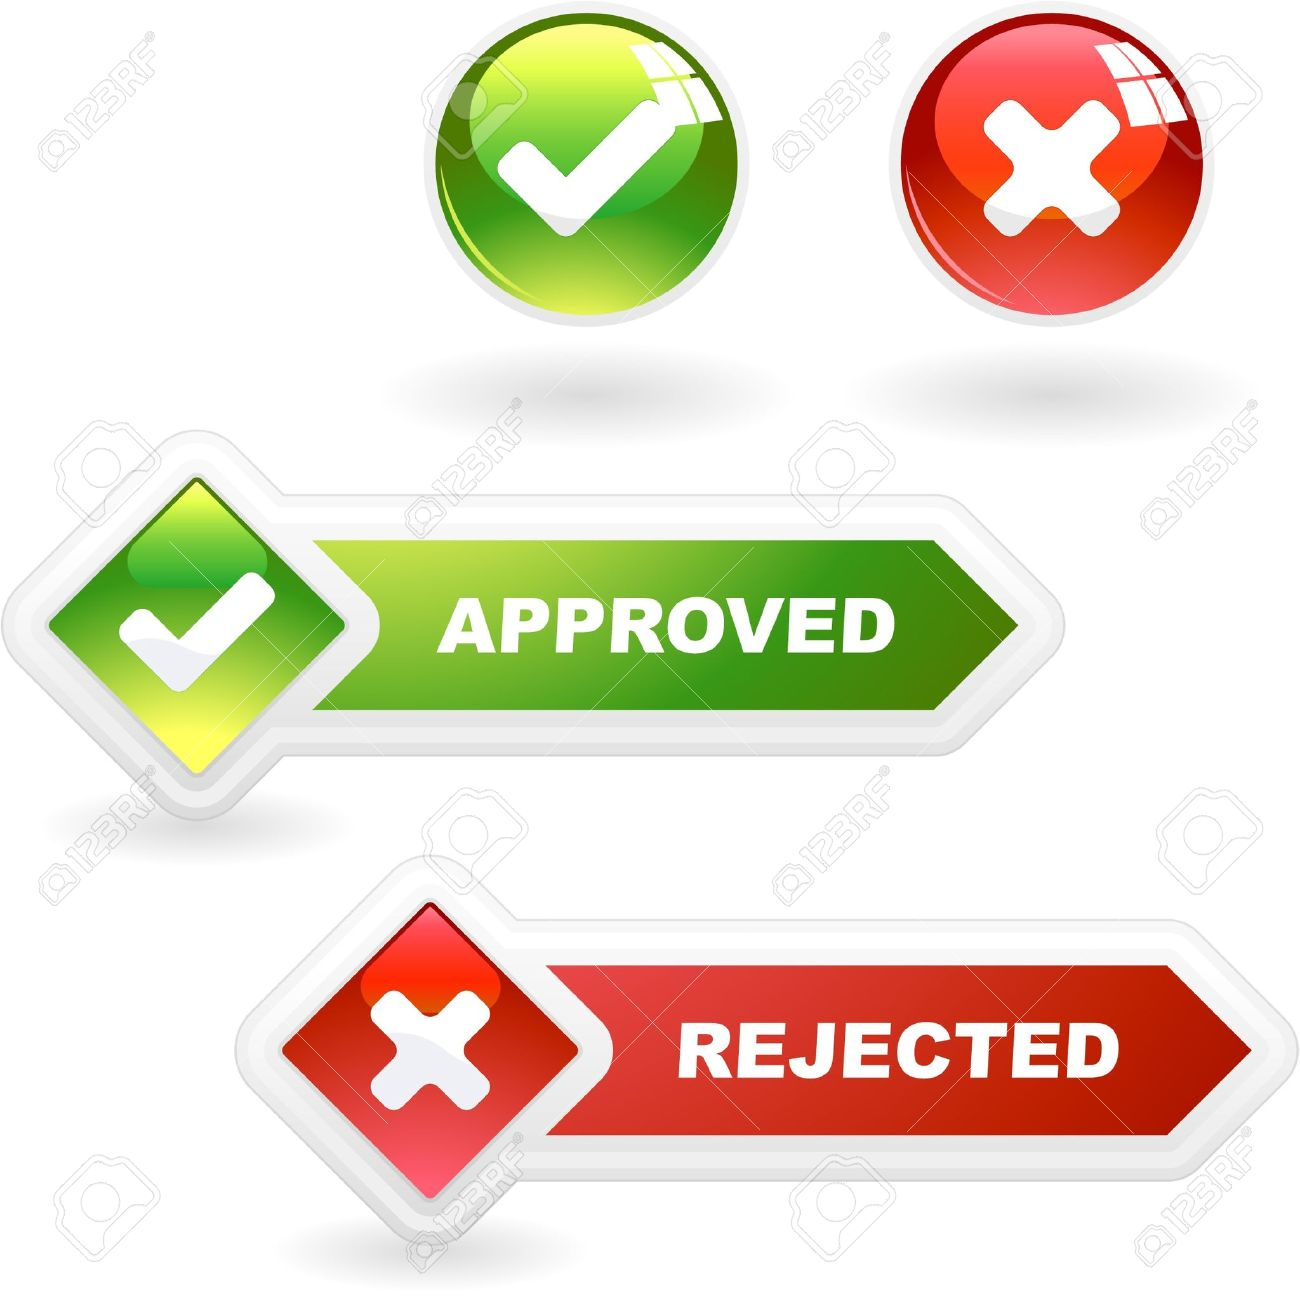 Approval icon clipart jpg free Approval Clipart   Free download best Approval Clipart on ClipArtMag.com jpg free